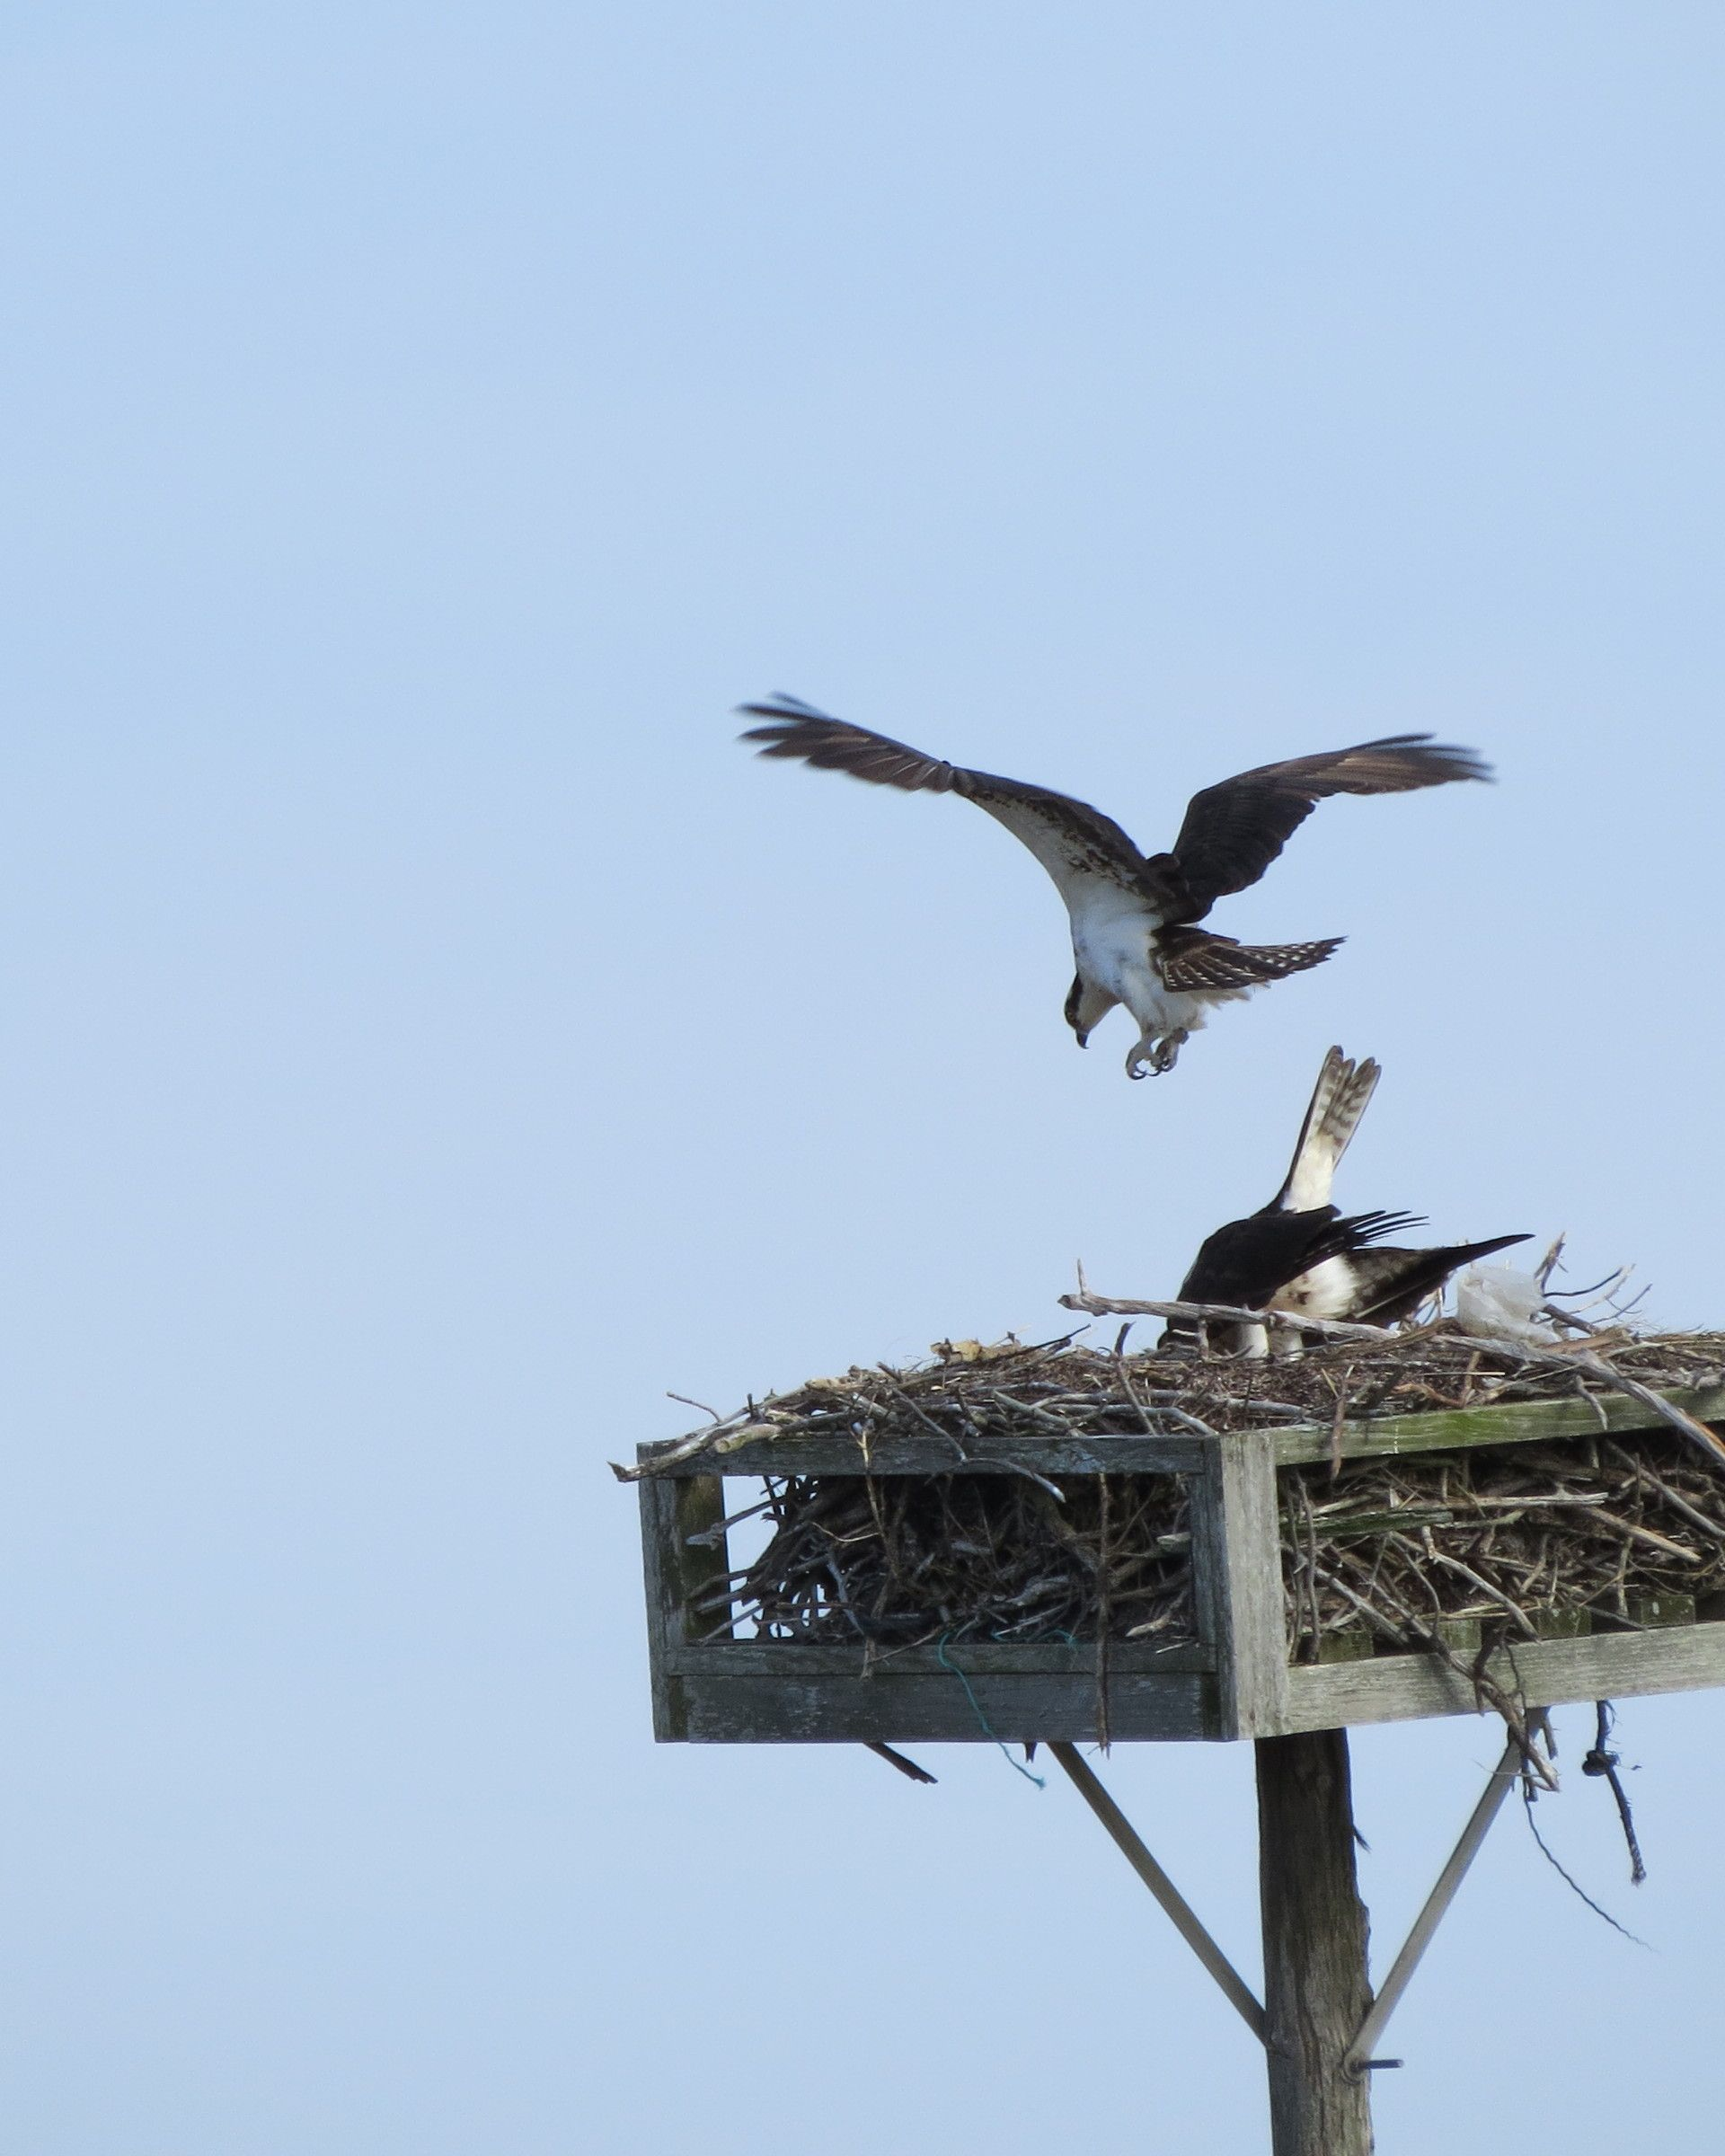 Island Beach State Park Nj: Osprey Alighting To Be With Mate On Nest Island Beach